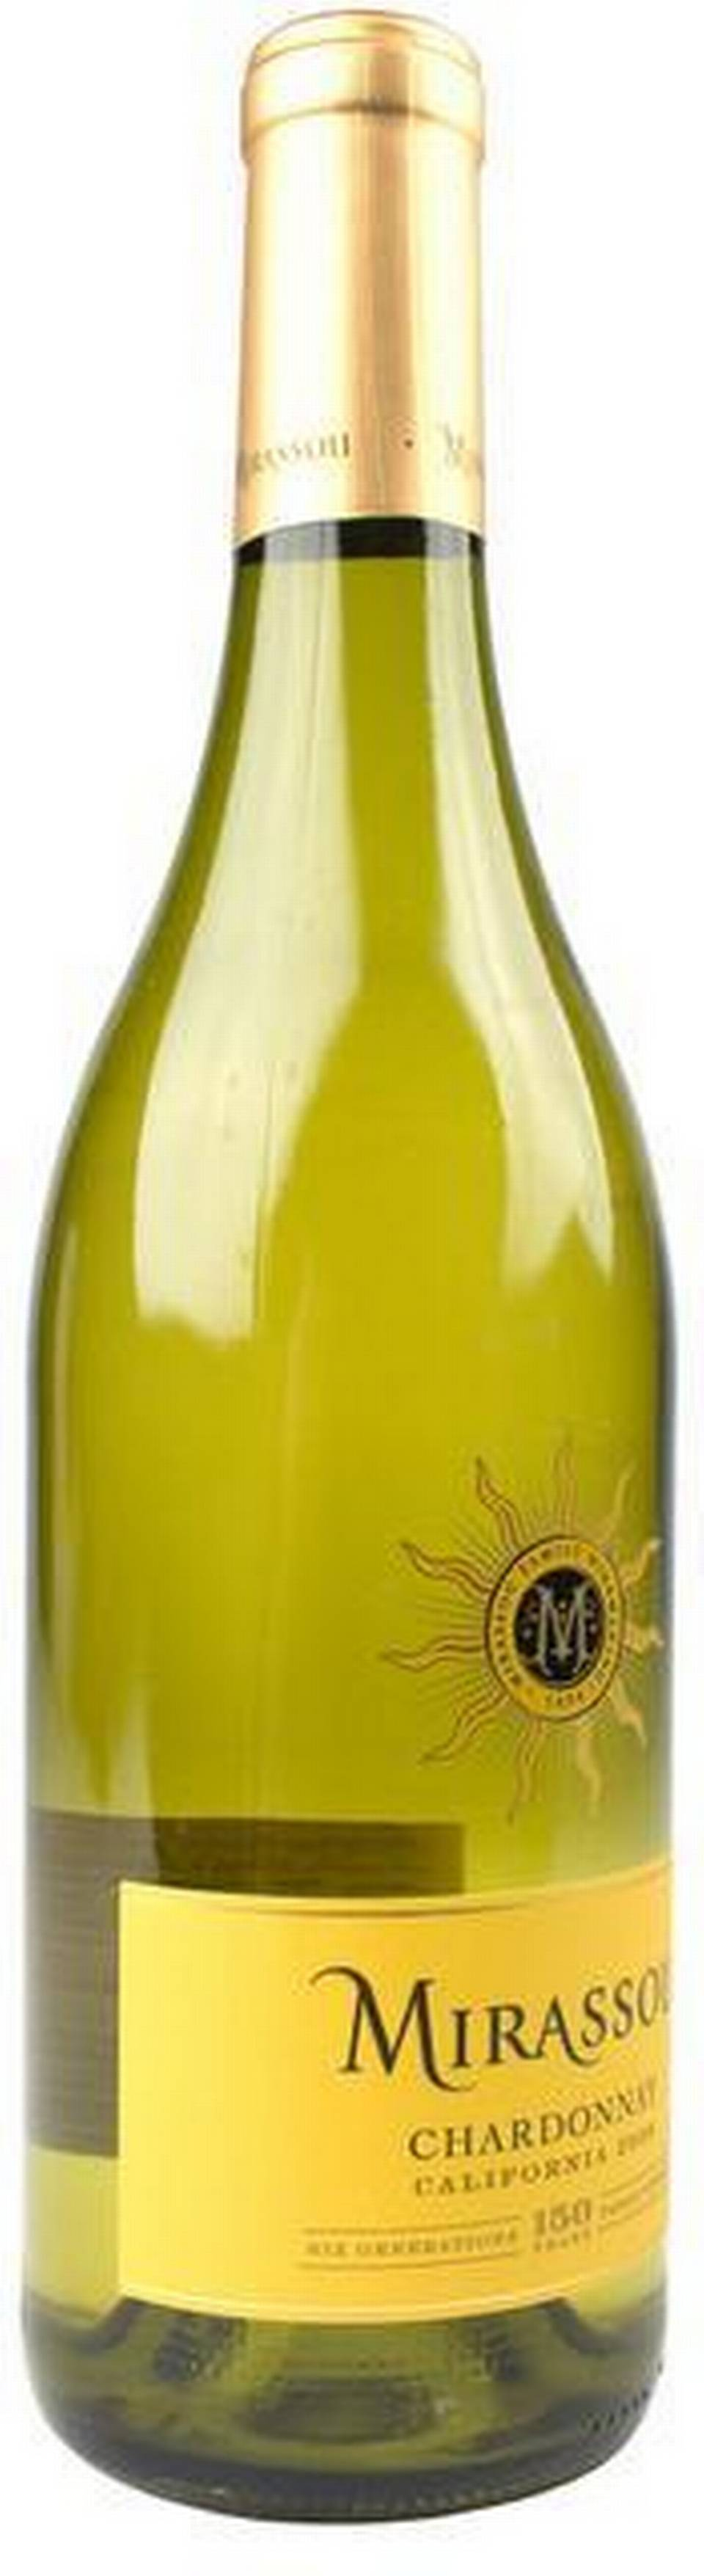 10 bottles to consider for your house wines wine1.jpg